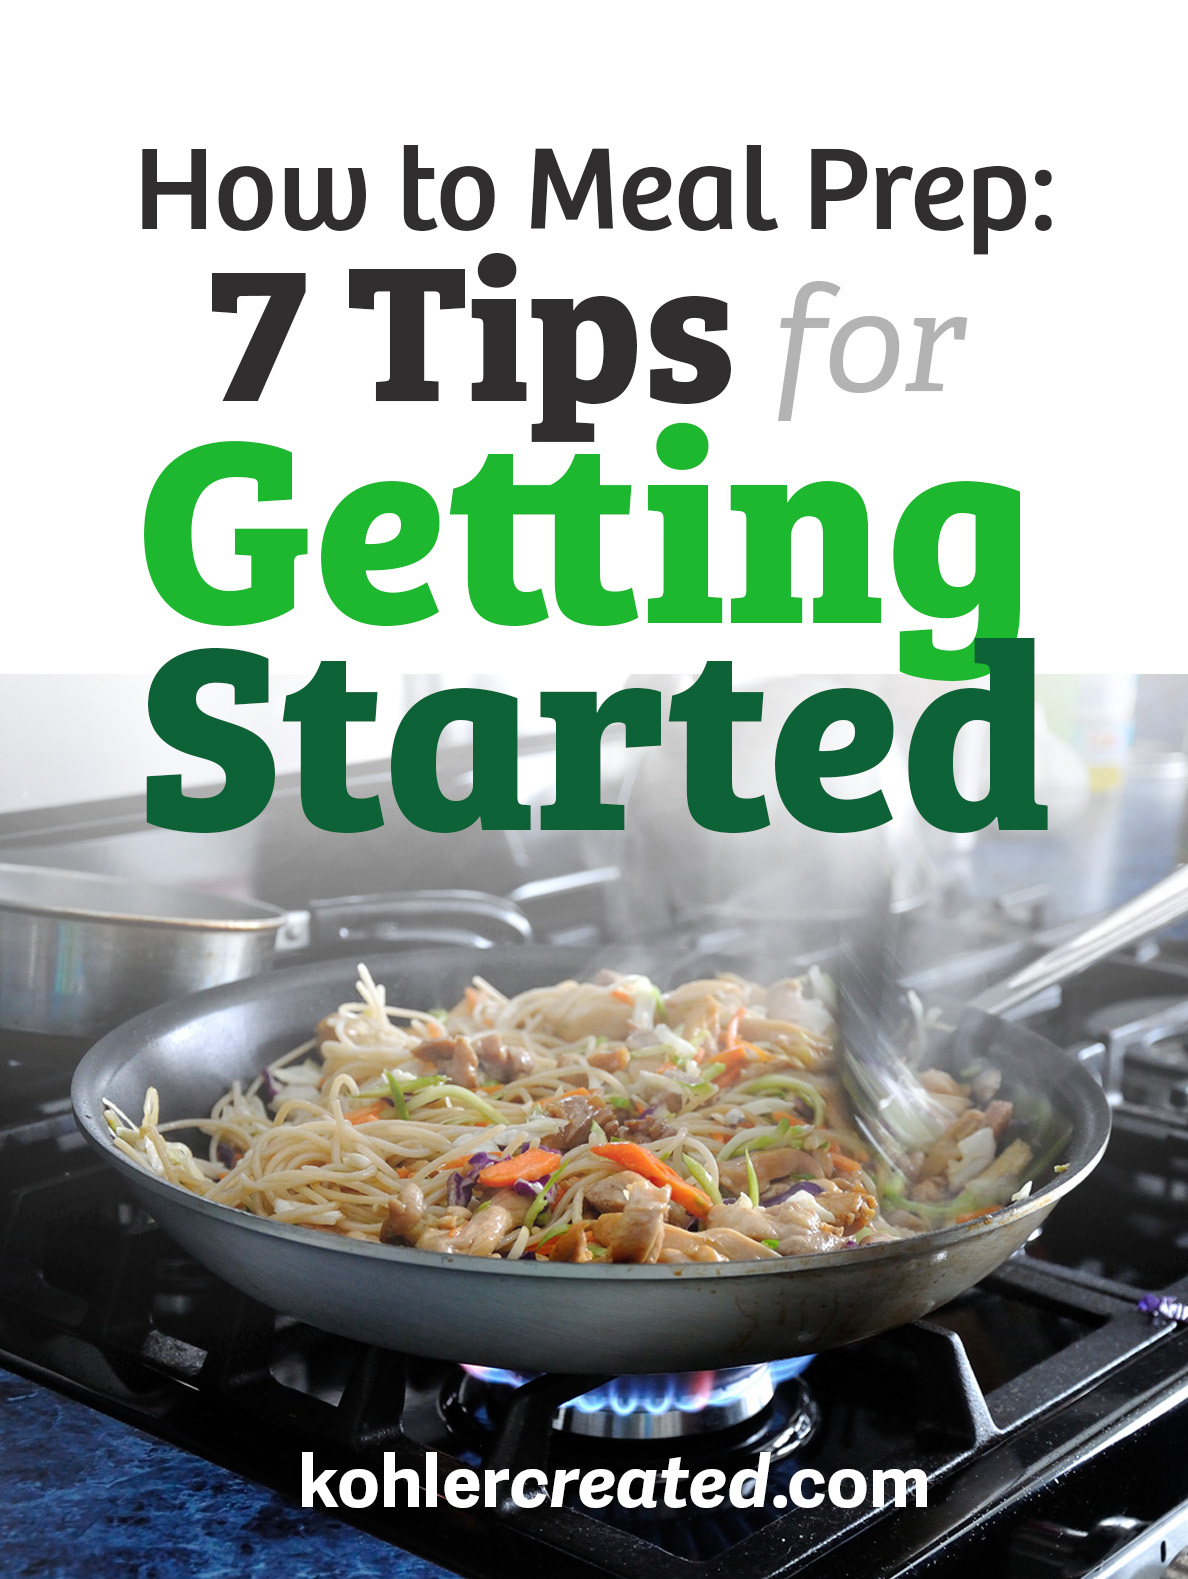 How to Meal Prep: 7 Tips for Beginners - Kohler Created